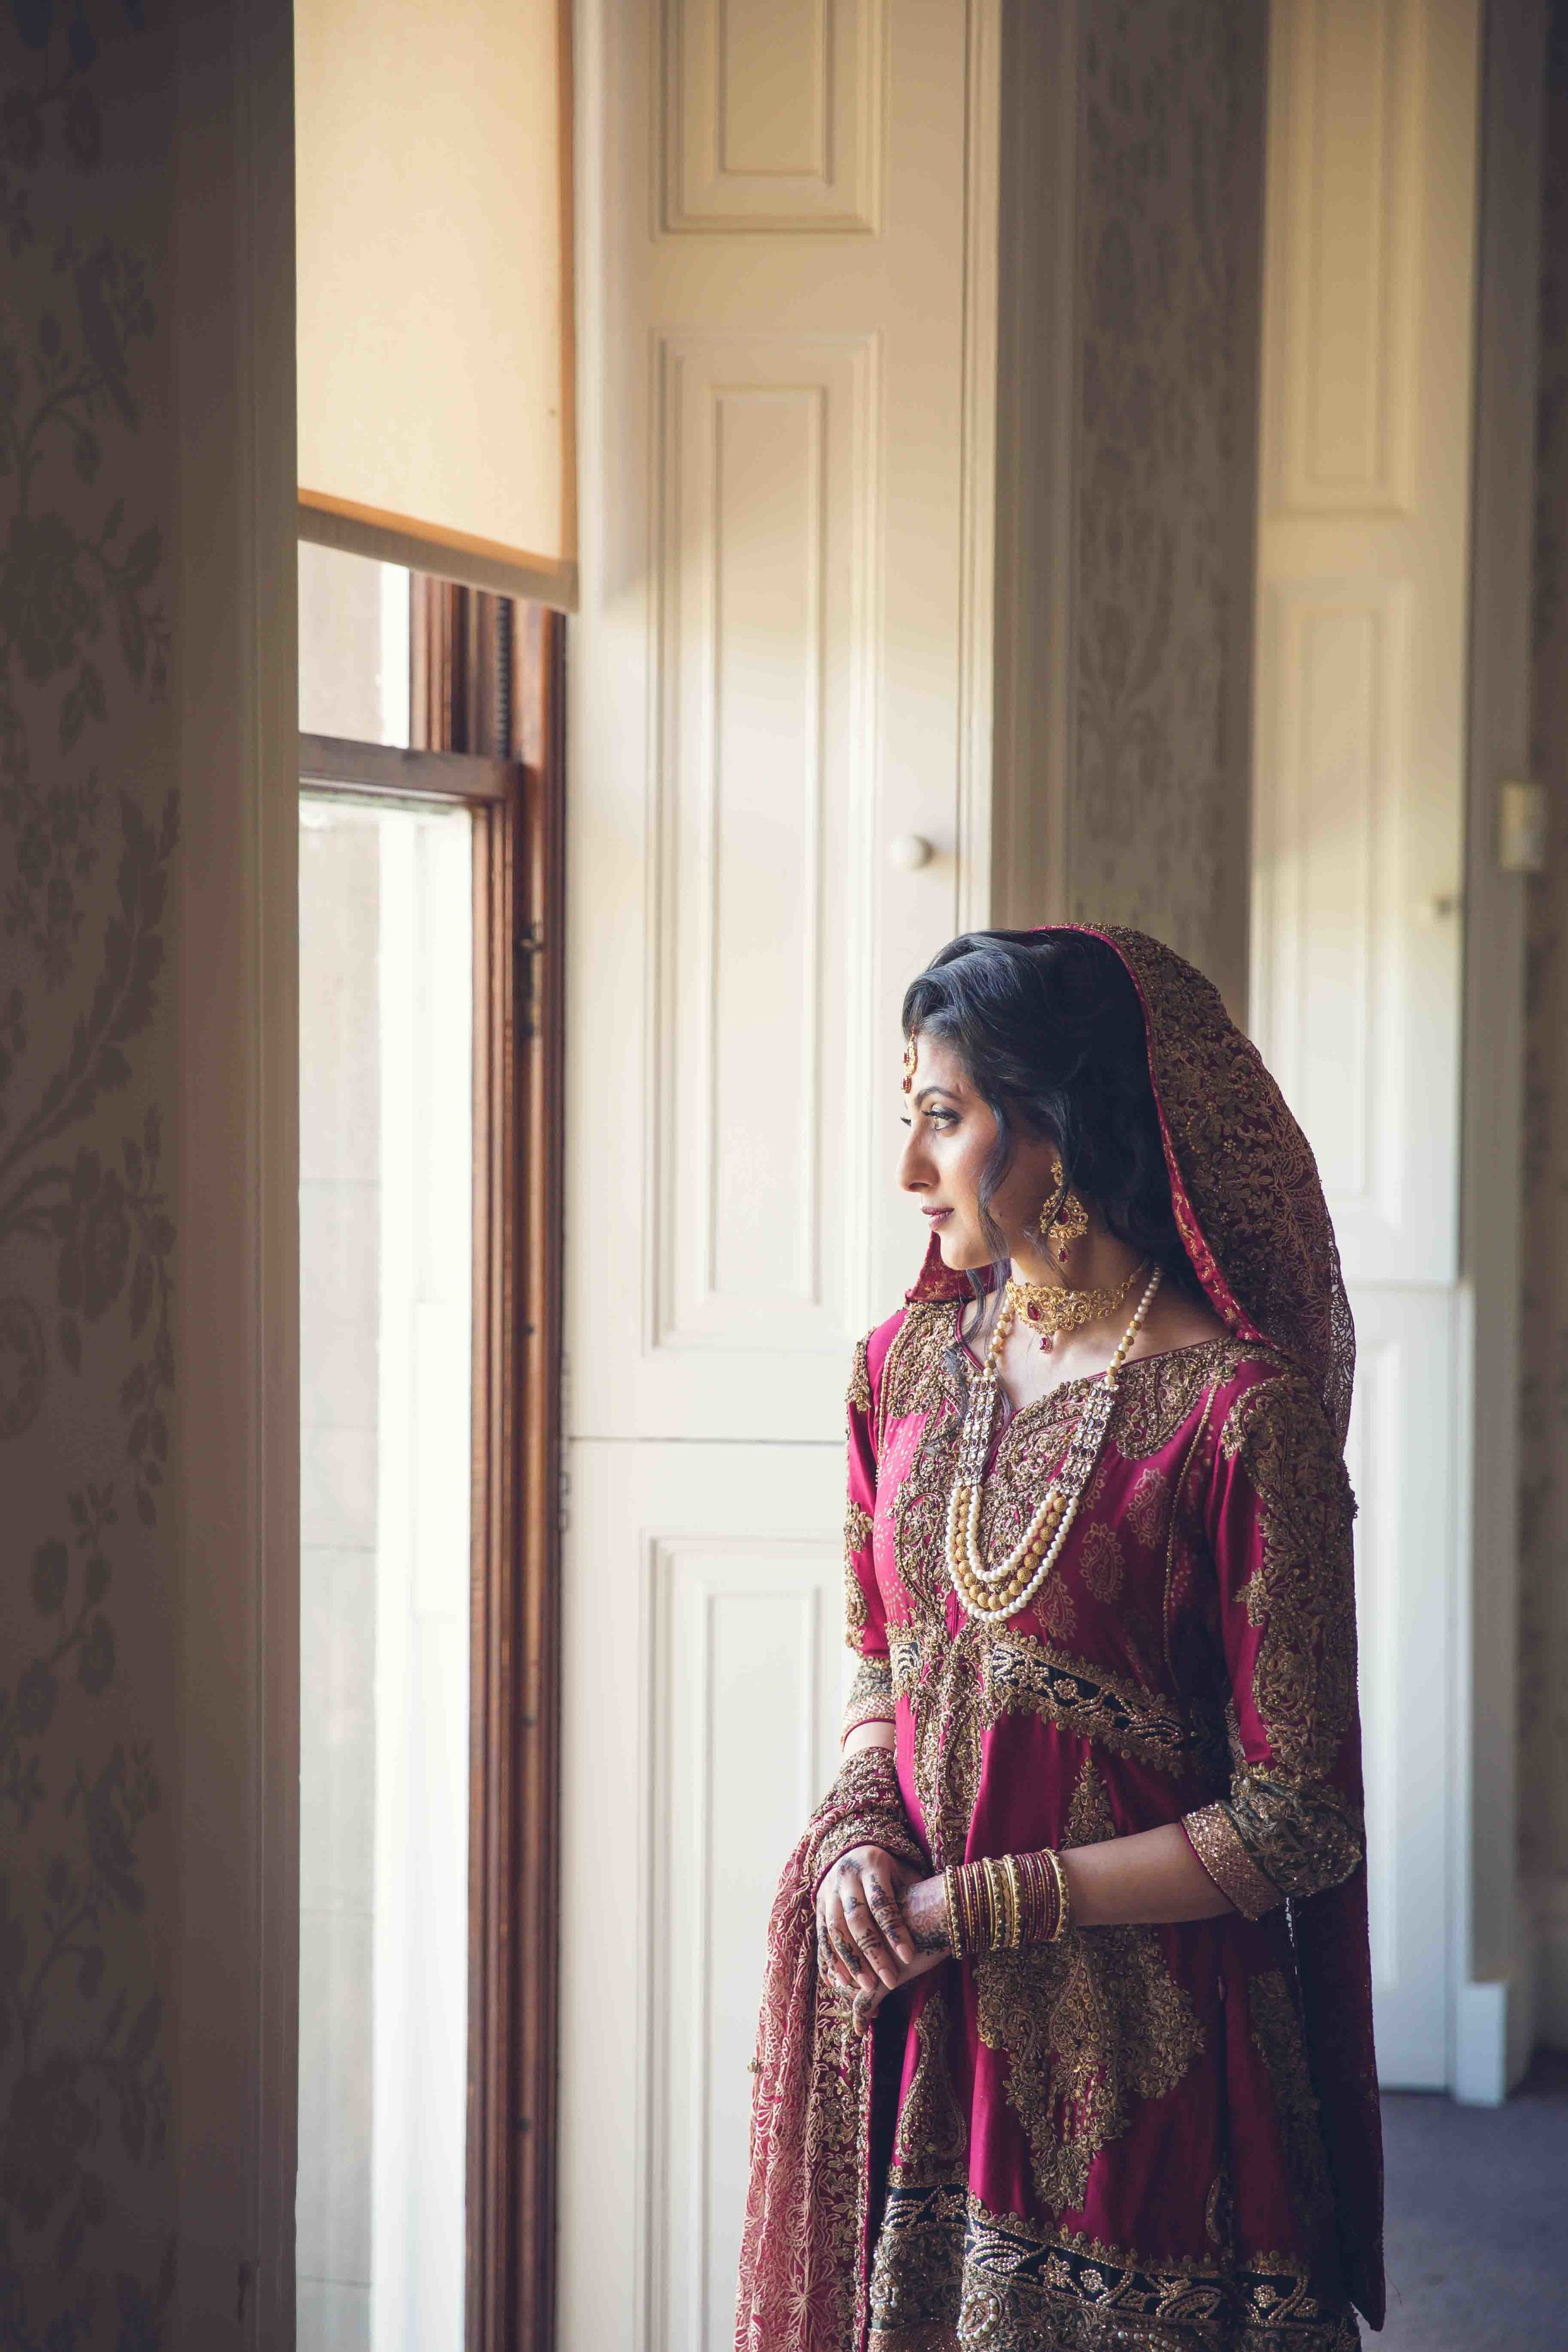 Opu Sultan Photography Asian wedding photography scotland edinburgh glasgow manchester birmingham london-273.jpg